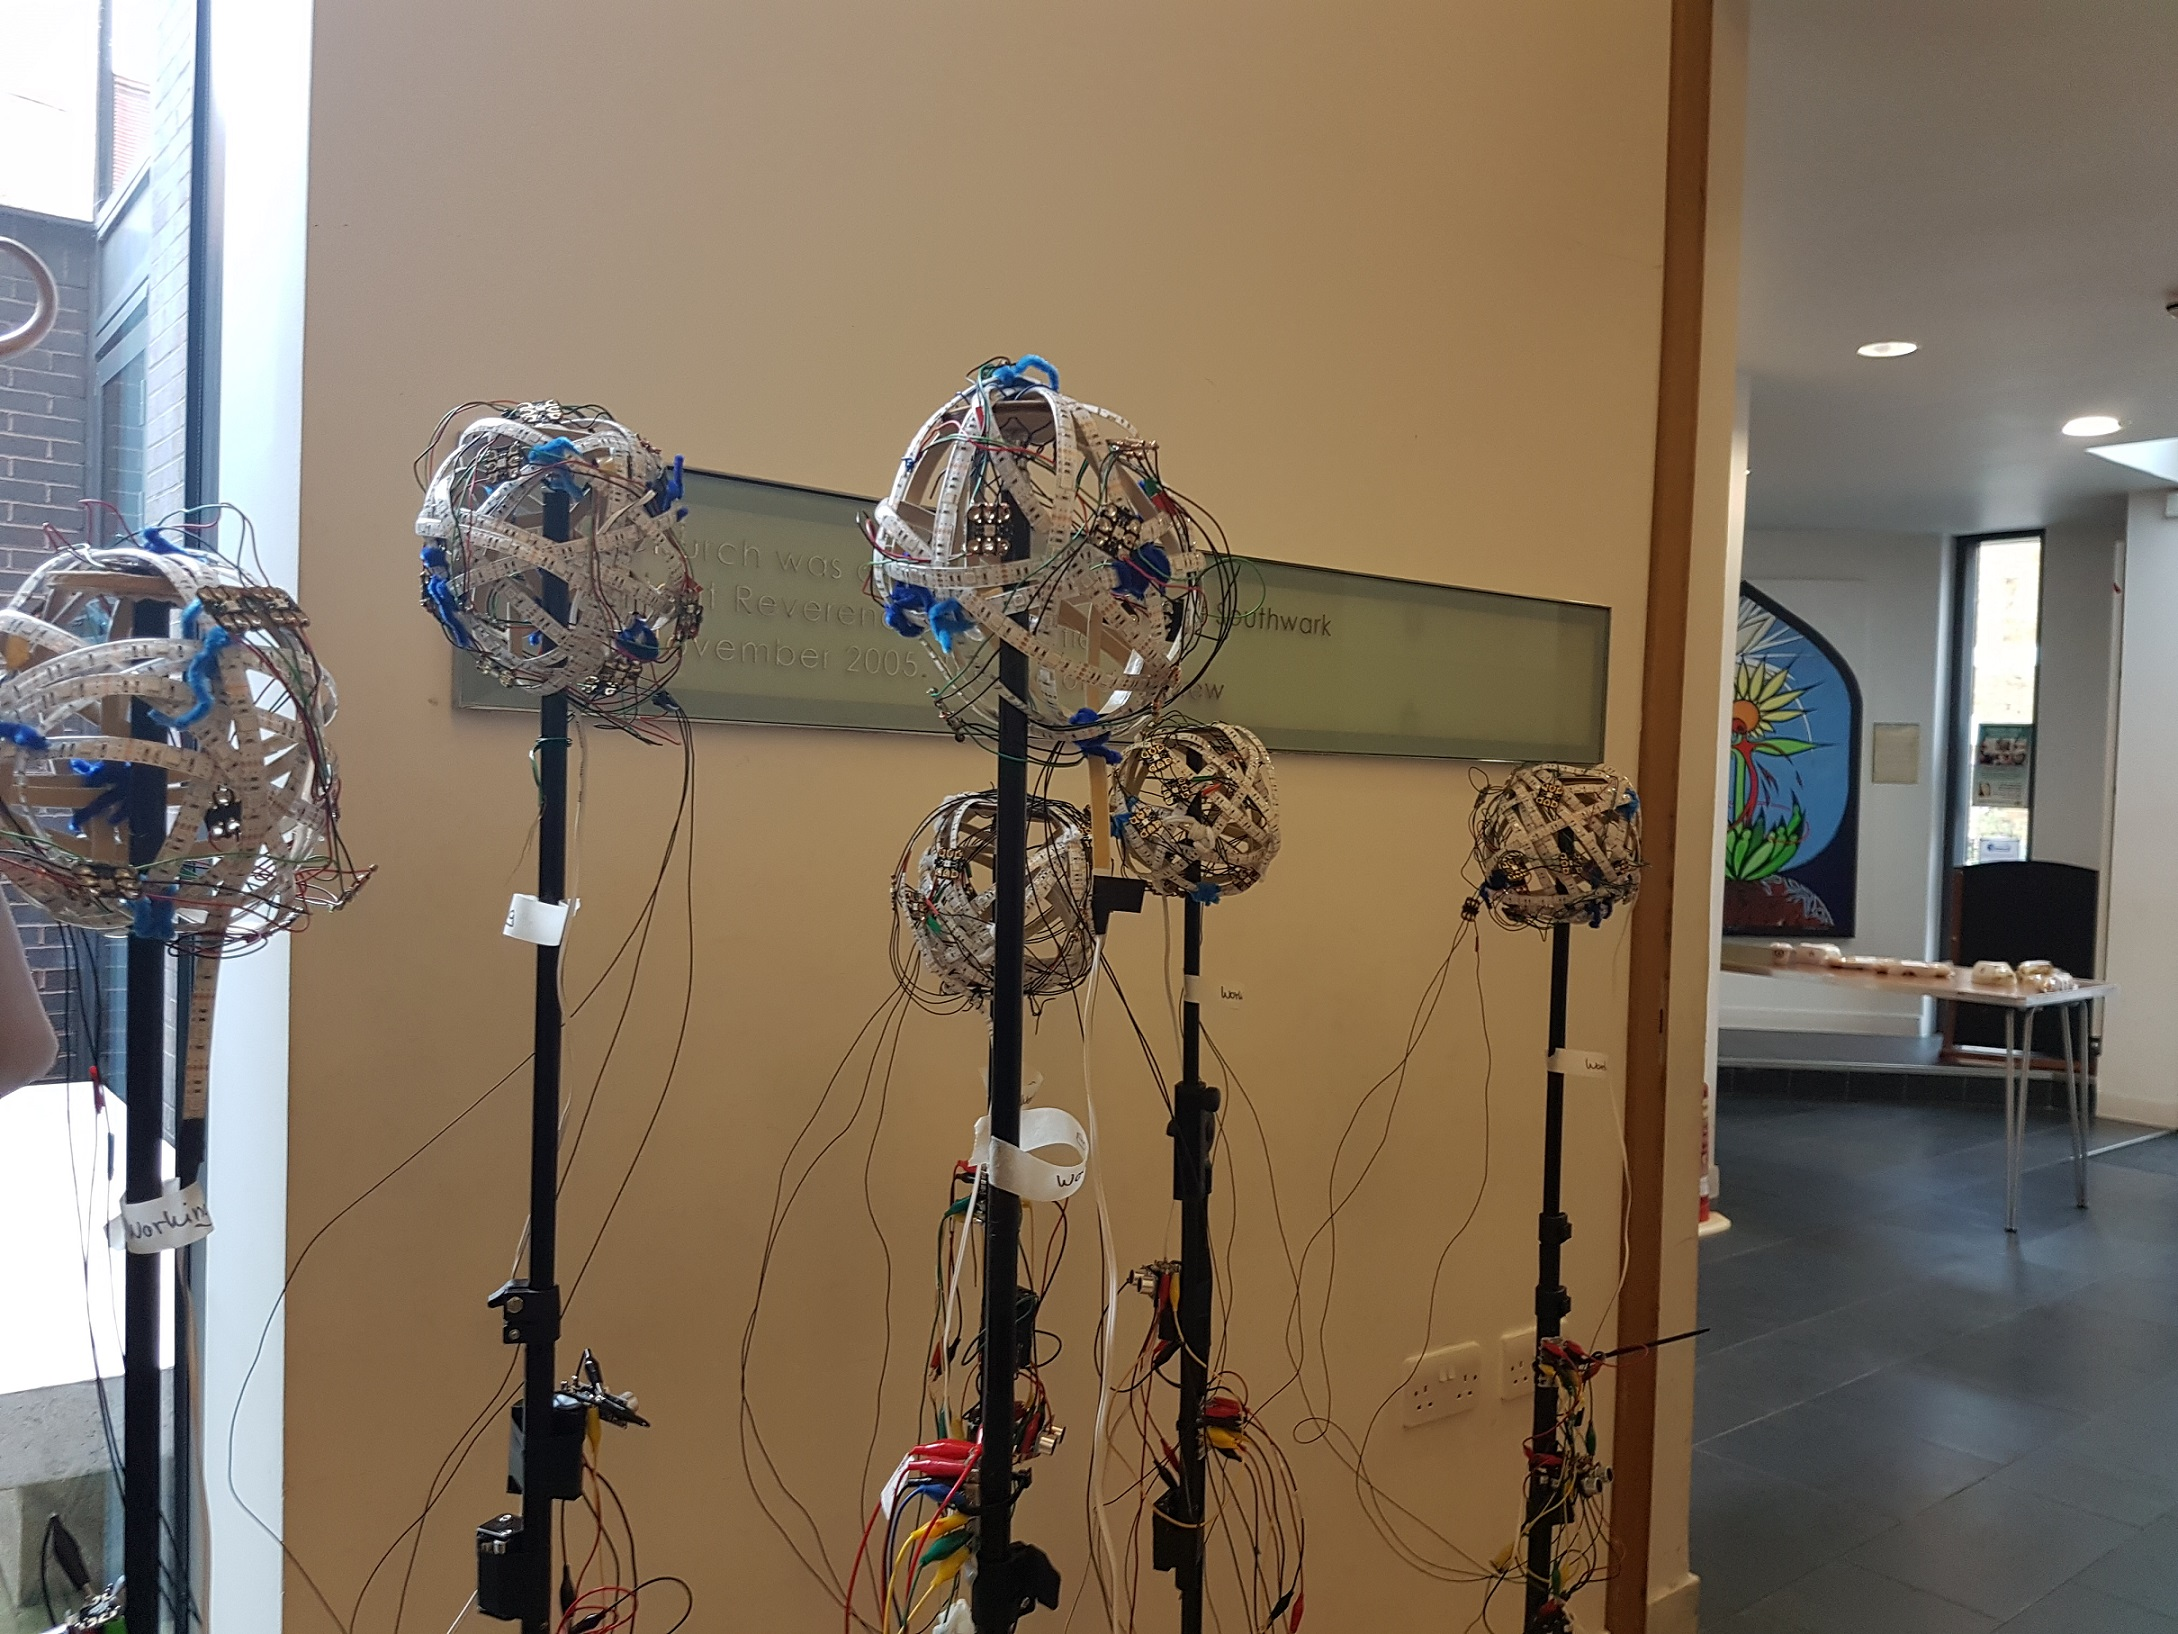 Balls of light were mounted on stands with the distance sensor and button.  Photo by Su Adams